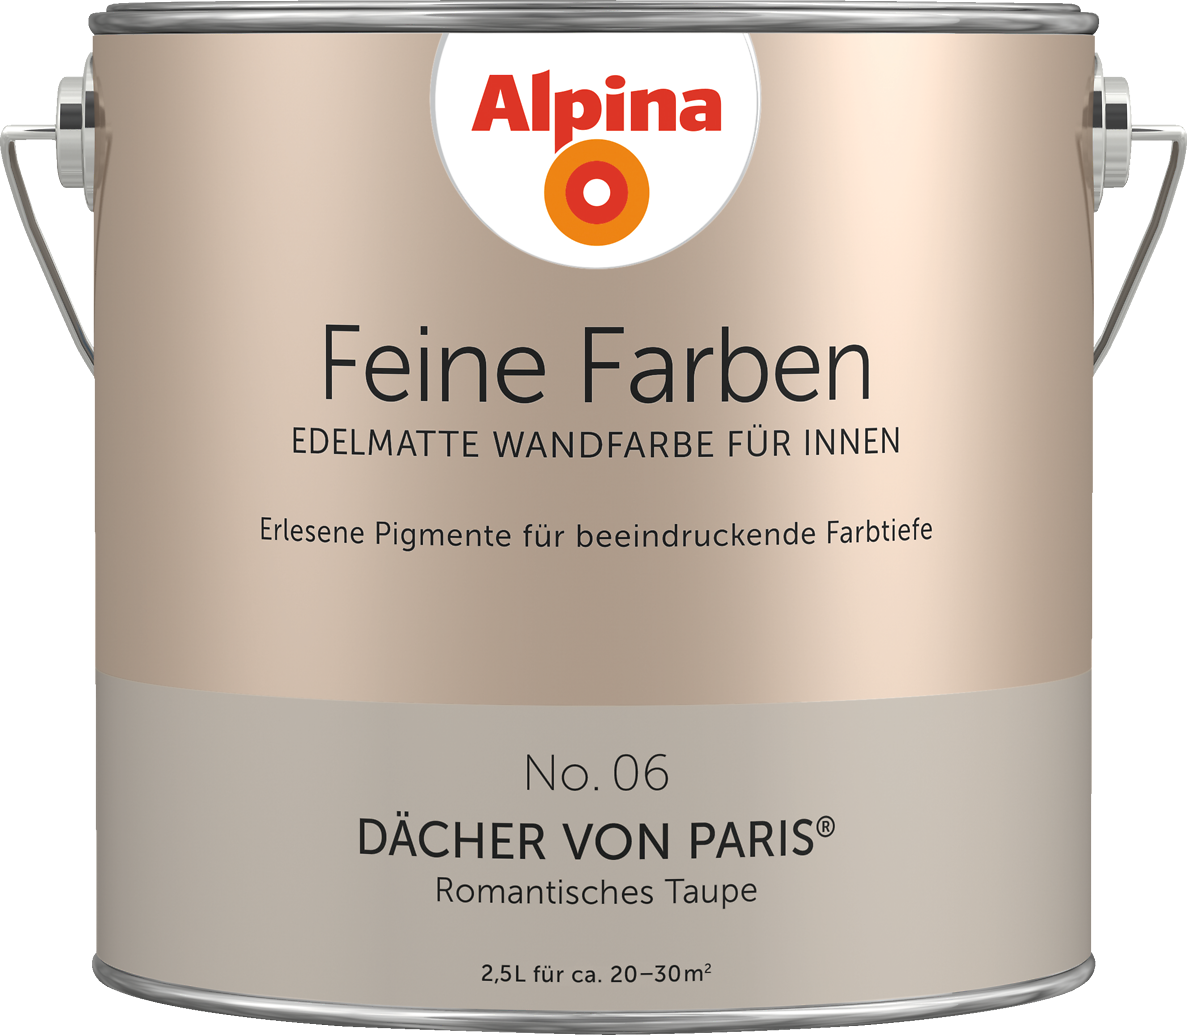 premium wandfarbe braun graubraun alpina feine farben d cher von paris alpina farben. Black Bedroom Furniture Sets. Home Design Ideas